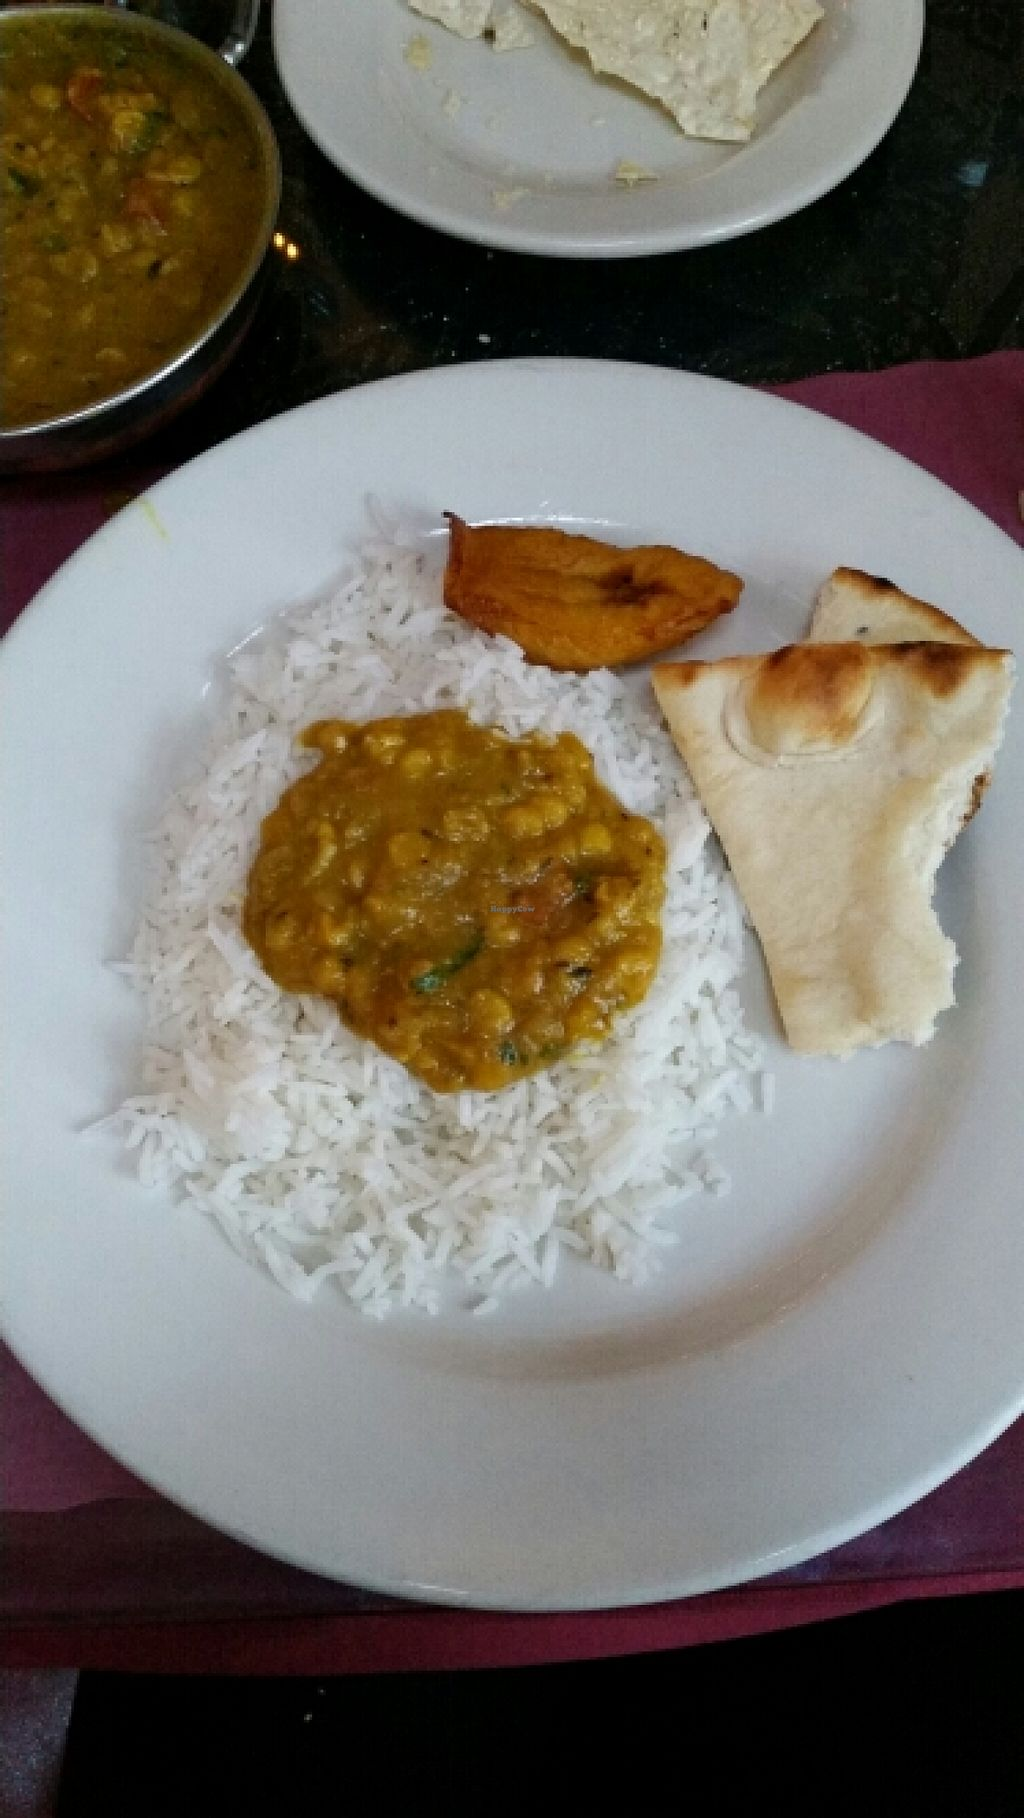 "Photo of Ayur Shri Fine Indian Cuisine  by <a href=""/members/profile/xoedie"">xoedie</a> <br/>lentils and rice basmati <br/> January 2, 2016  - <a href='/contact/abuse/image/22259/130741'>Report</a>"